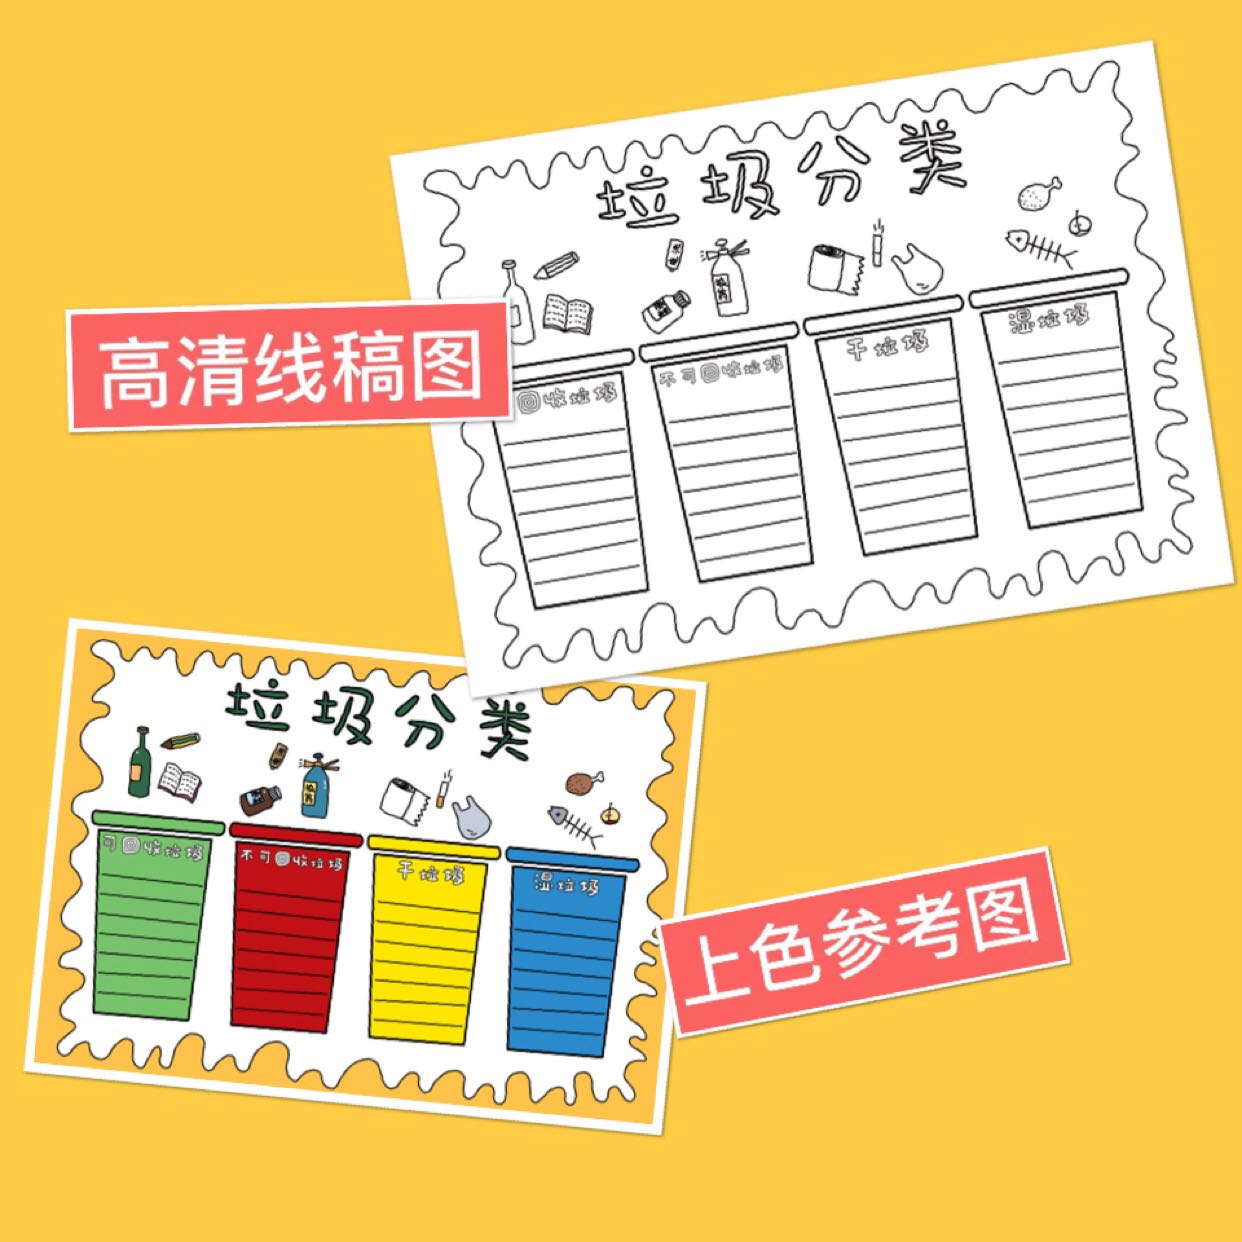 The electronic template environmental protection classification theme song of primary school students handwritten newspaper includes coloring reference drawing and line draft drawing